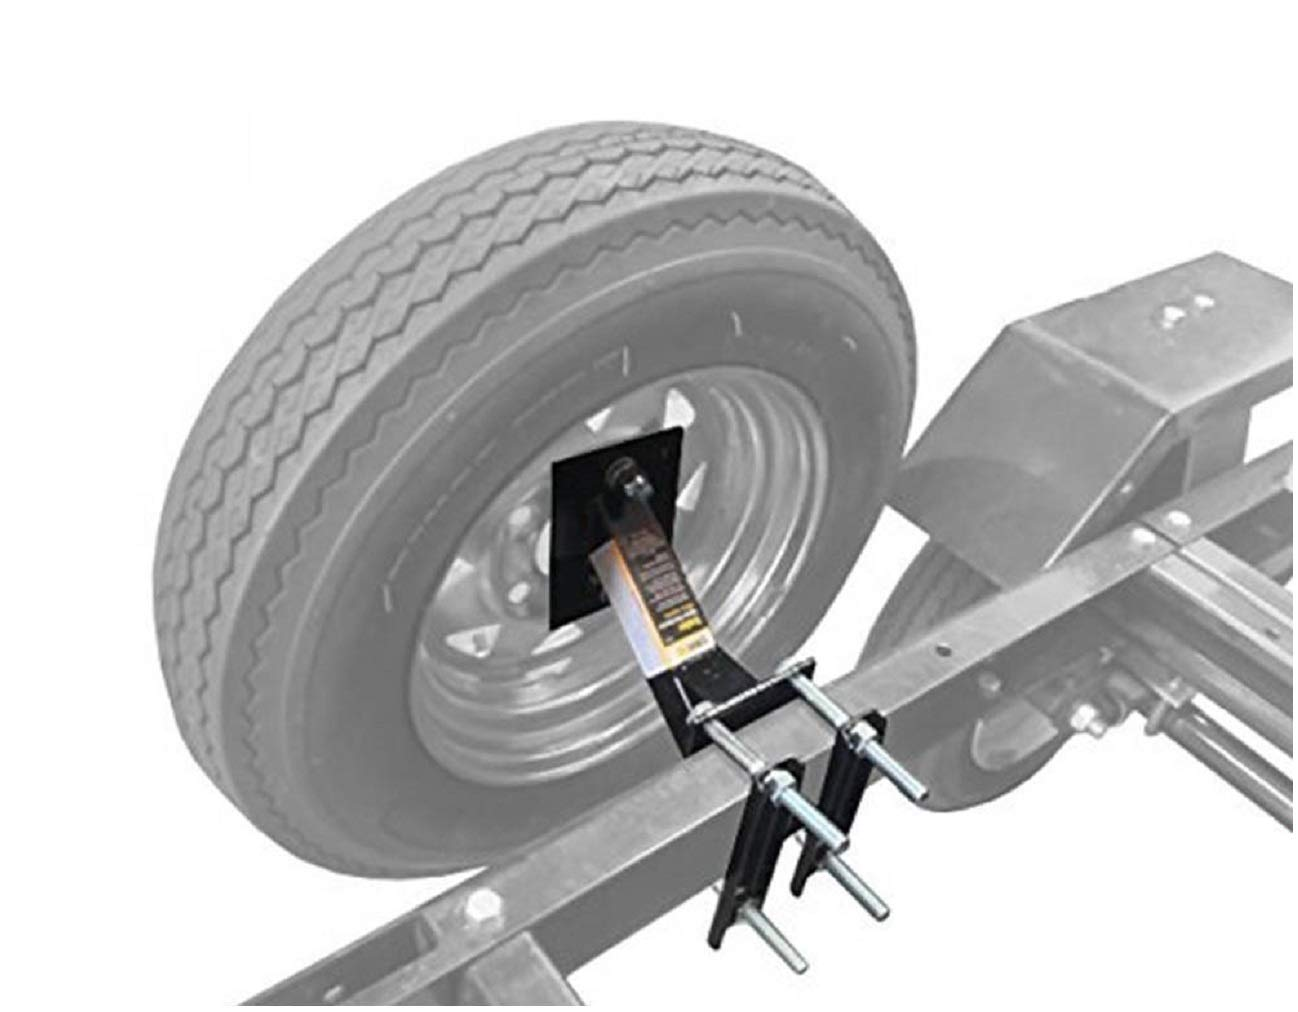 Home & Comforts Boat Trailer Spare Tire Mount Carrier Wheel Cargo Holder by Home & Comforts